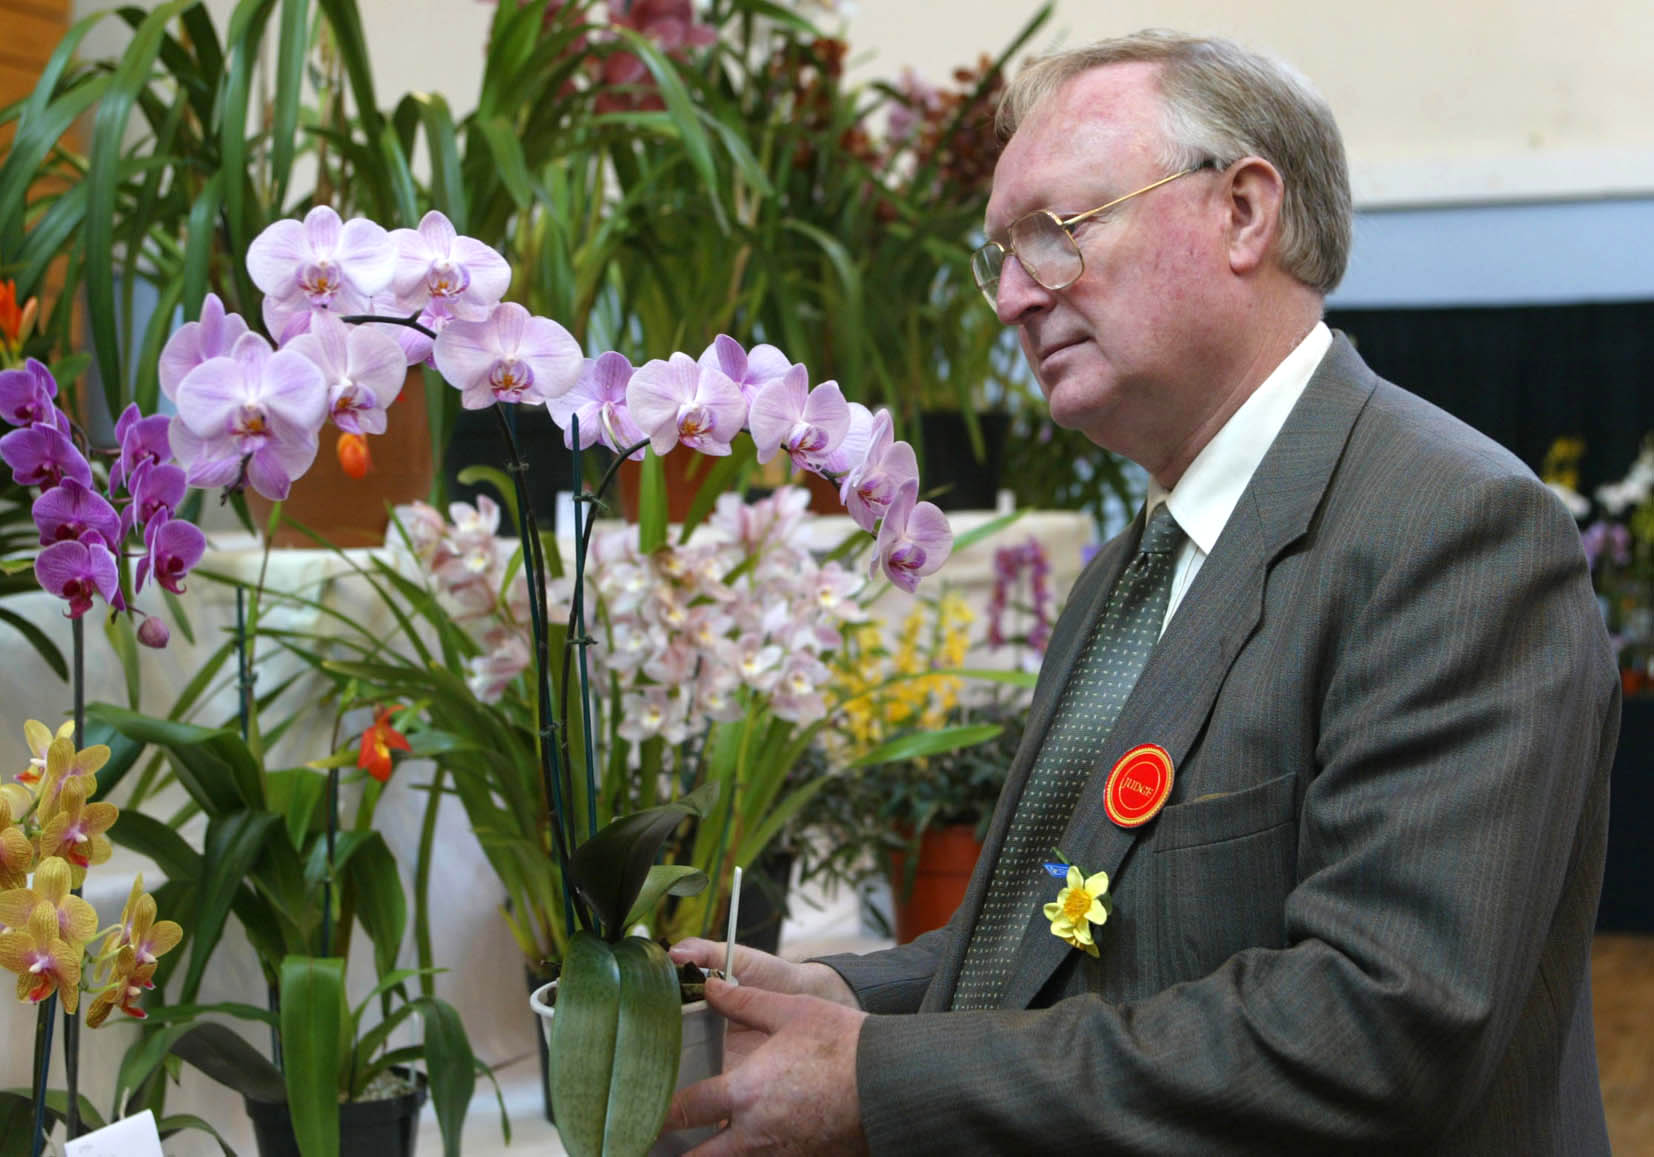 West Cornwall Spring Show - Barry Hampton travelled 120 miles from Exmouth to Penzance to judge the new orchid section of the show.